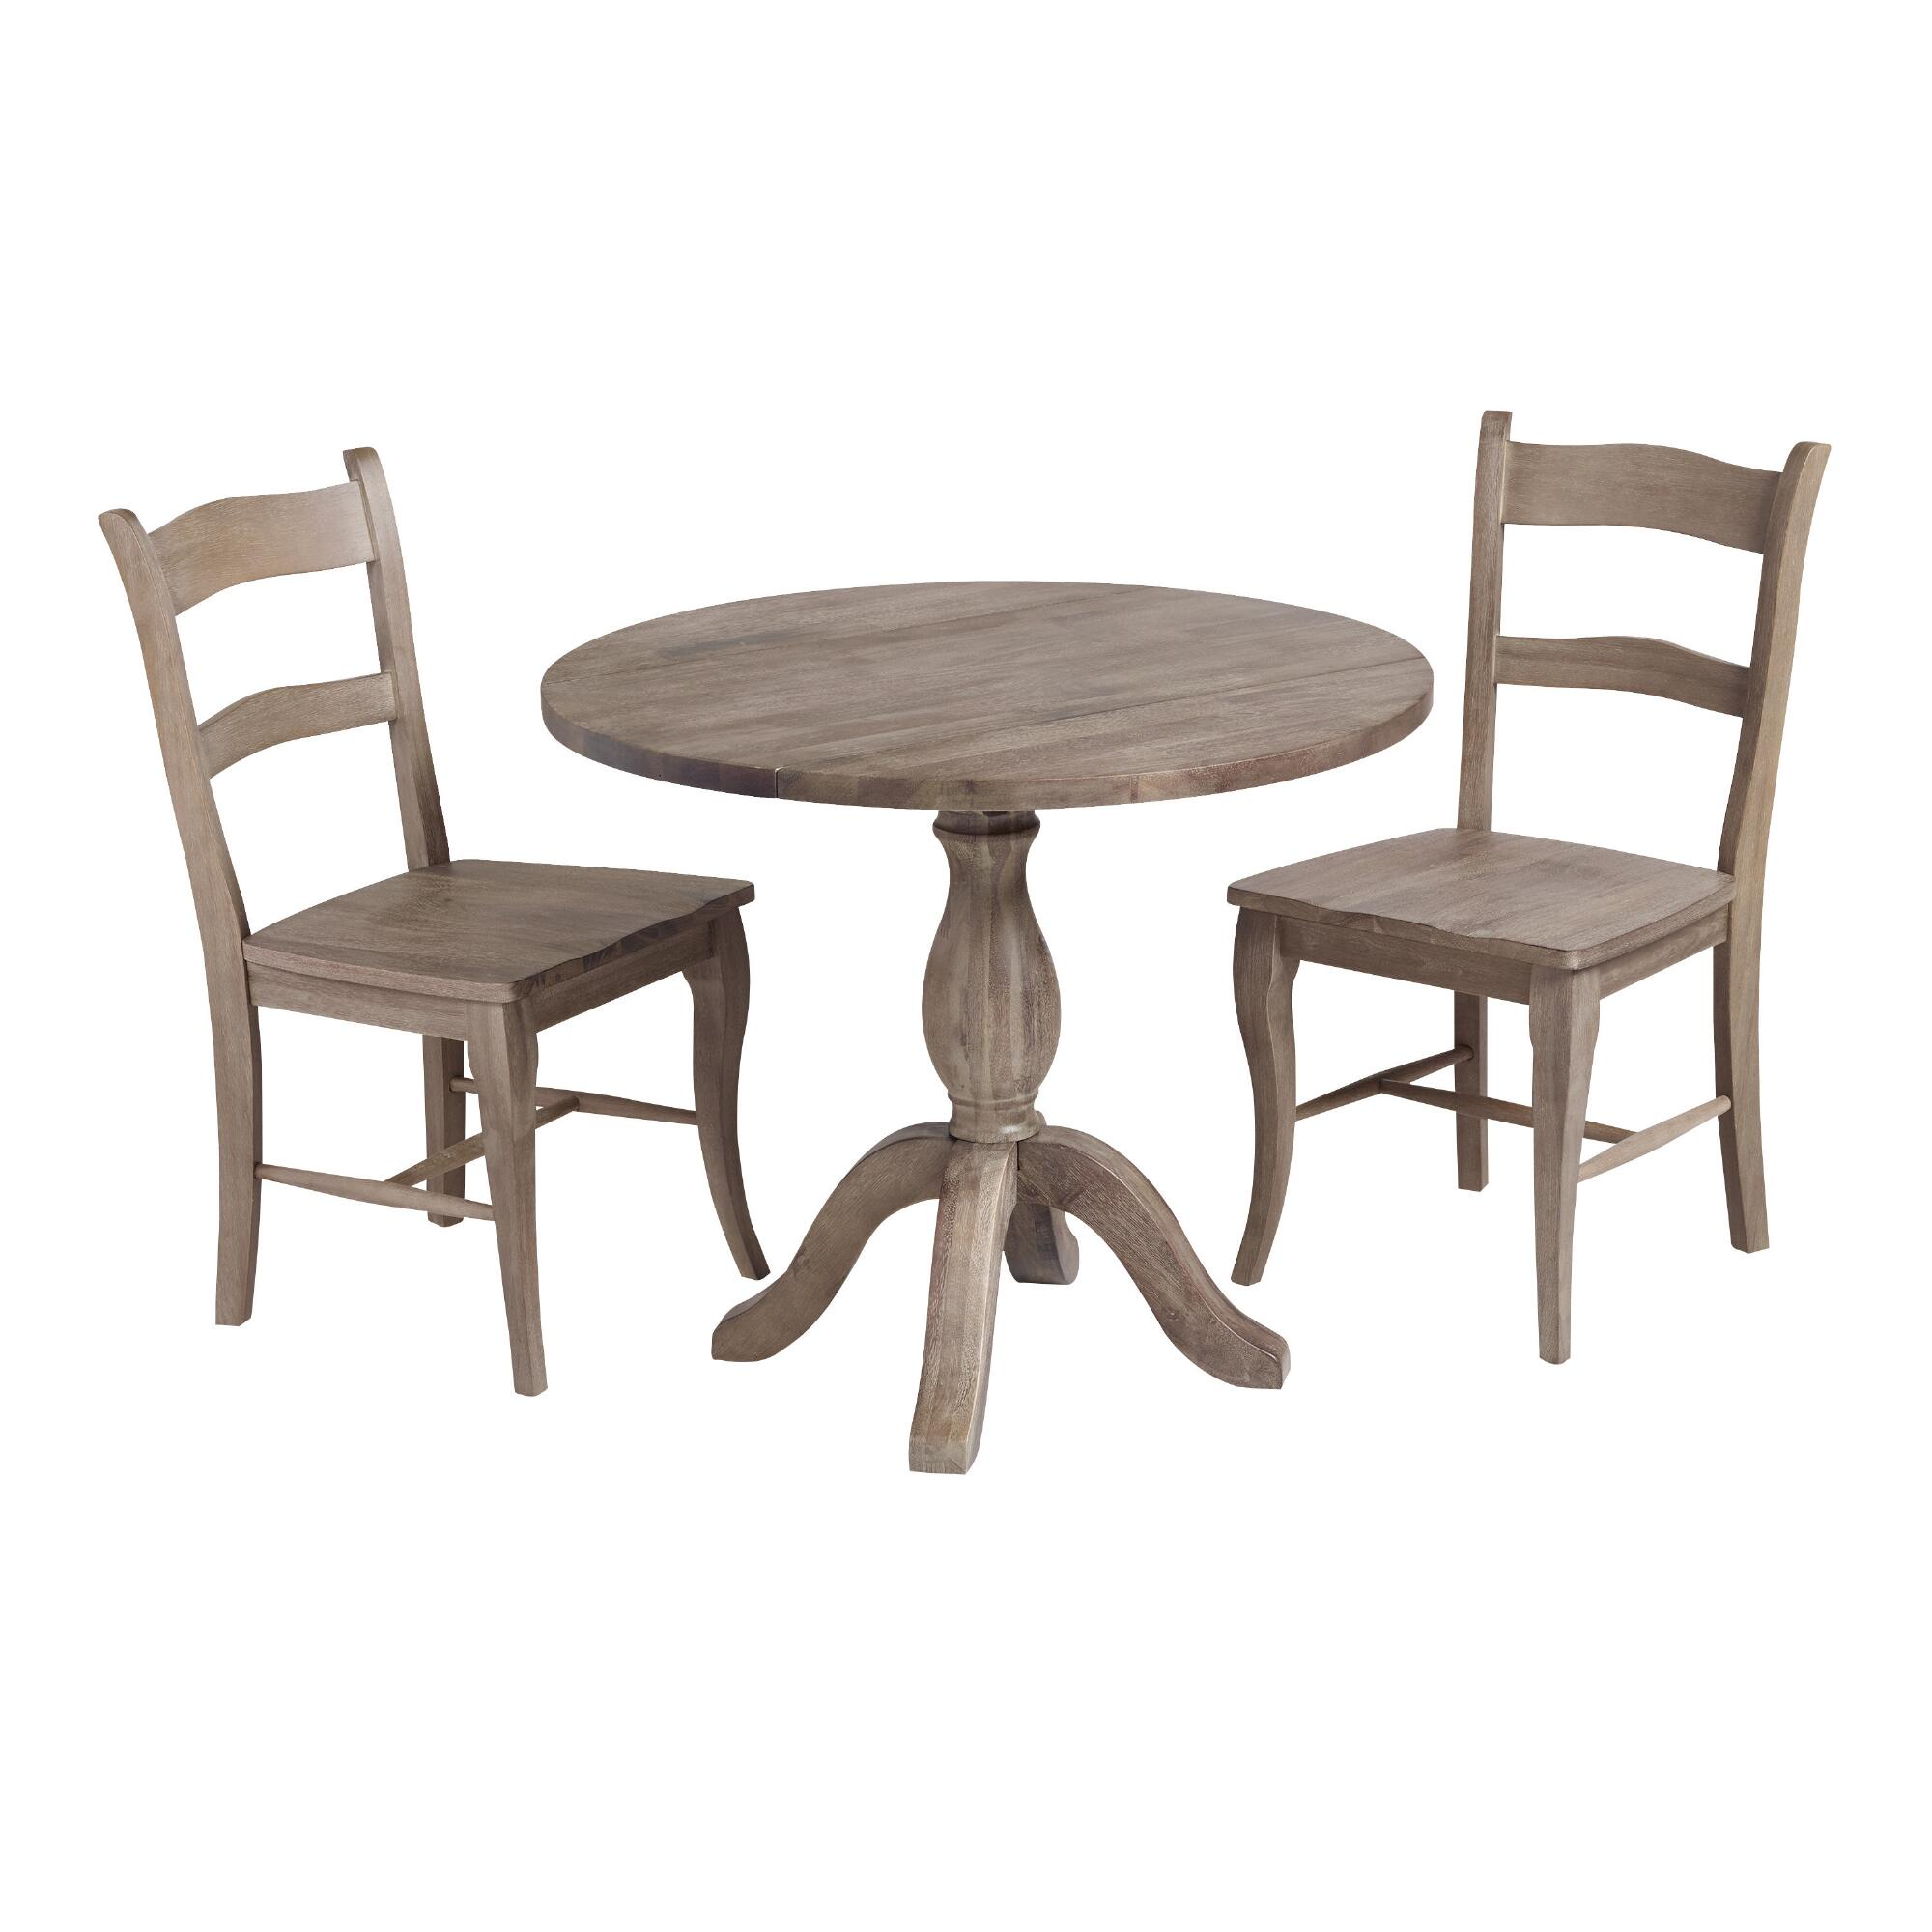 Dining Collections: Weathered Gray Jozy Drop Leaf Dining Collection